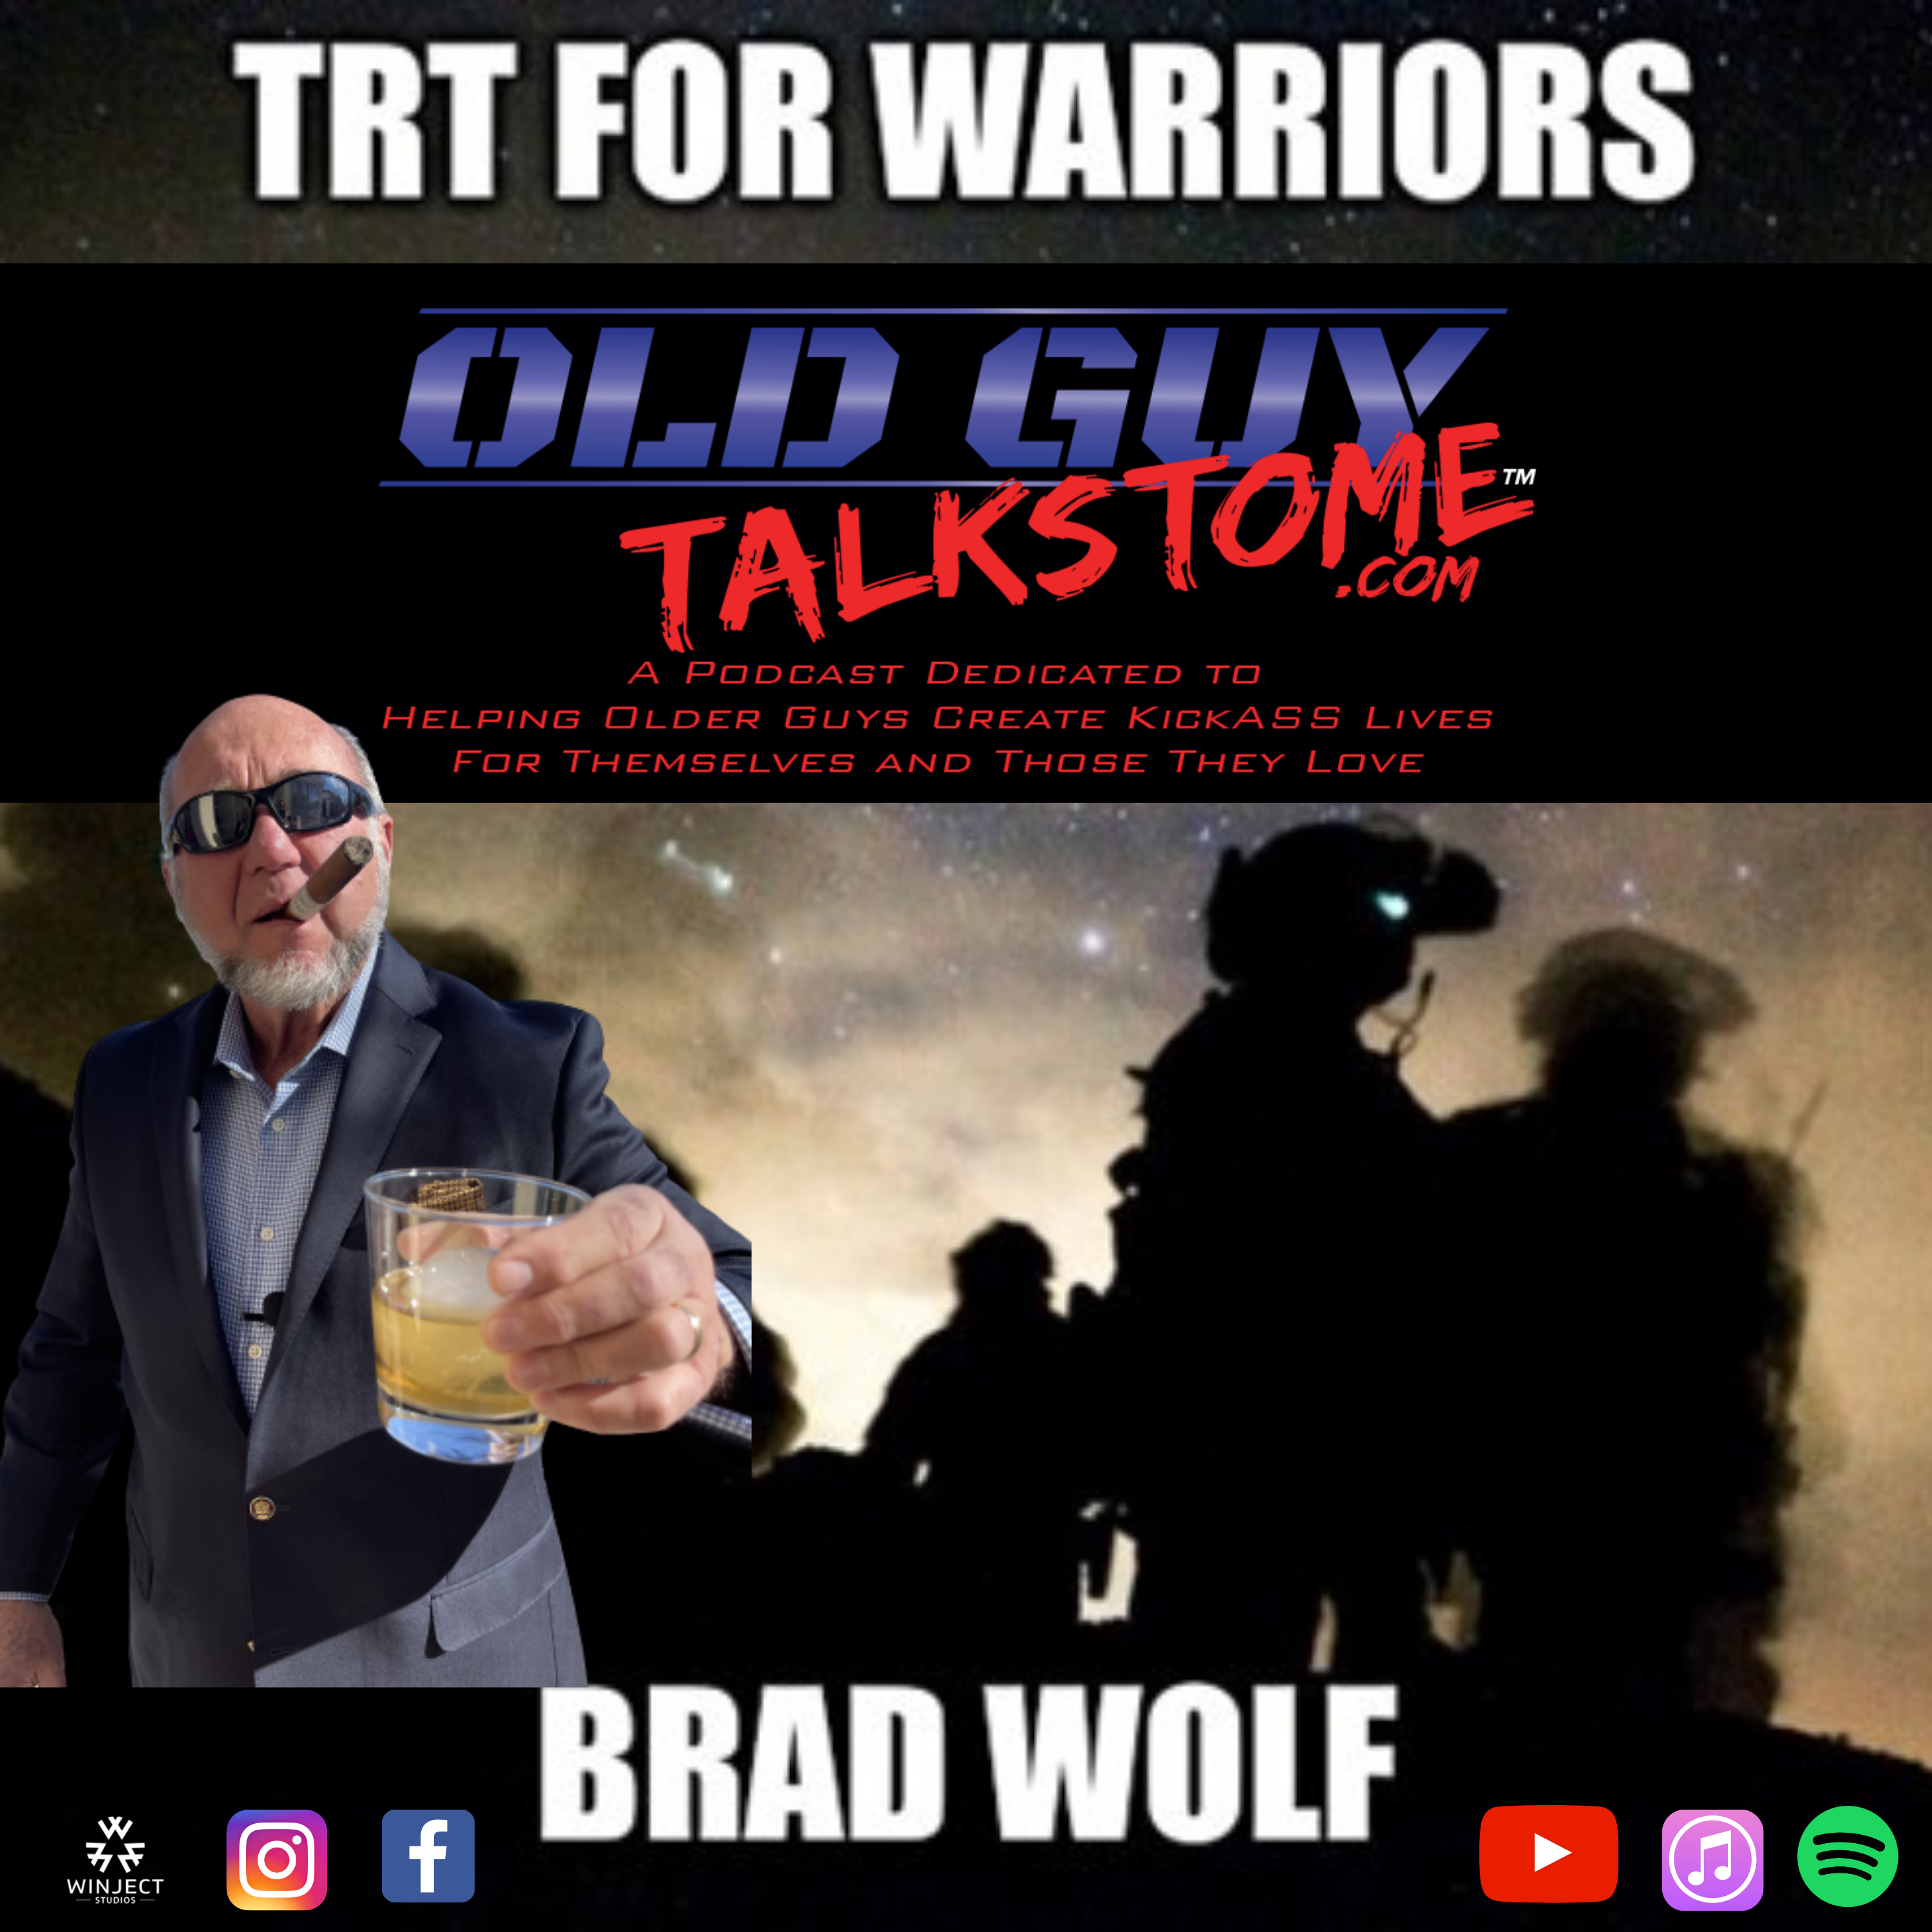 OldGuyTalksToMe - 86.  Testosterone Therapy and TBIs with Brad Wolf